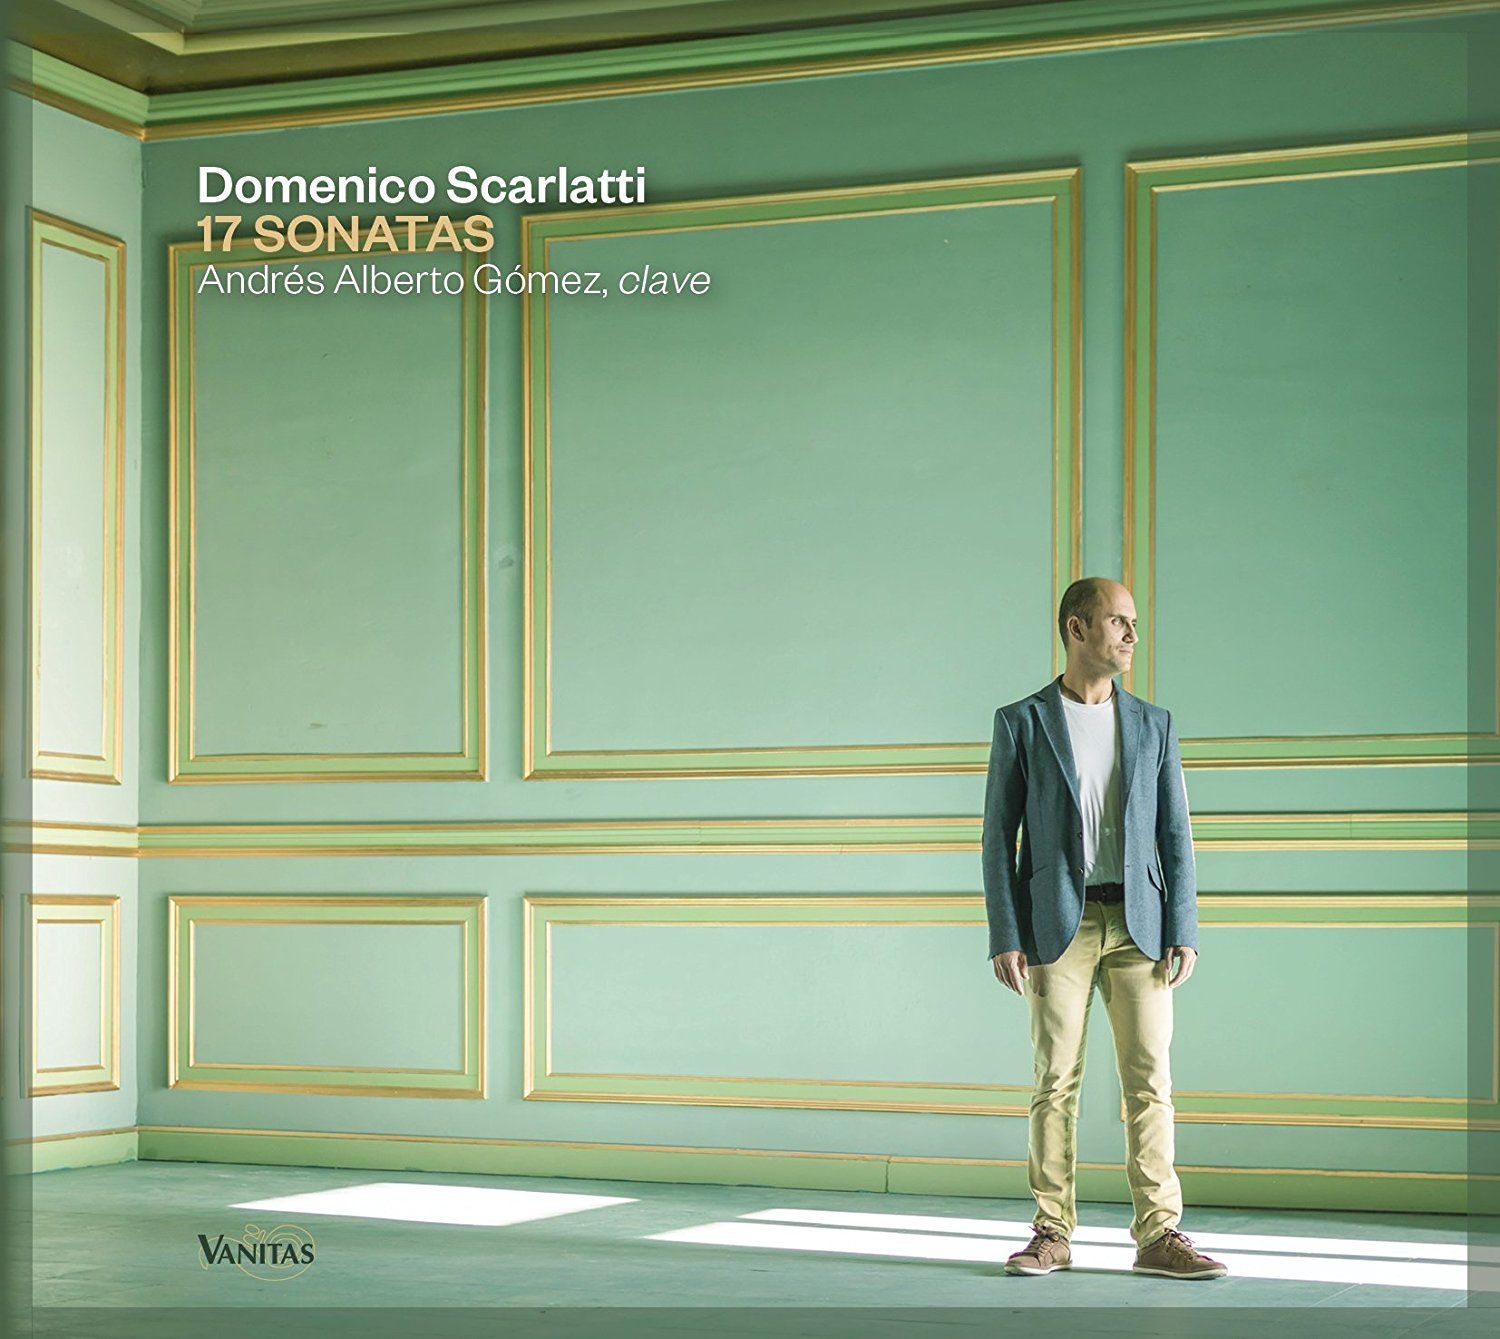 SCARLATTI sonatas 17 andres alberto gomez clavecin cd review critique cd par classiquenews cd annonce